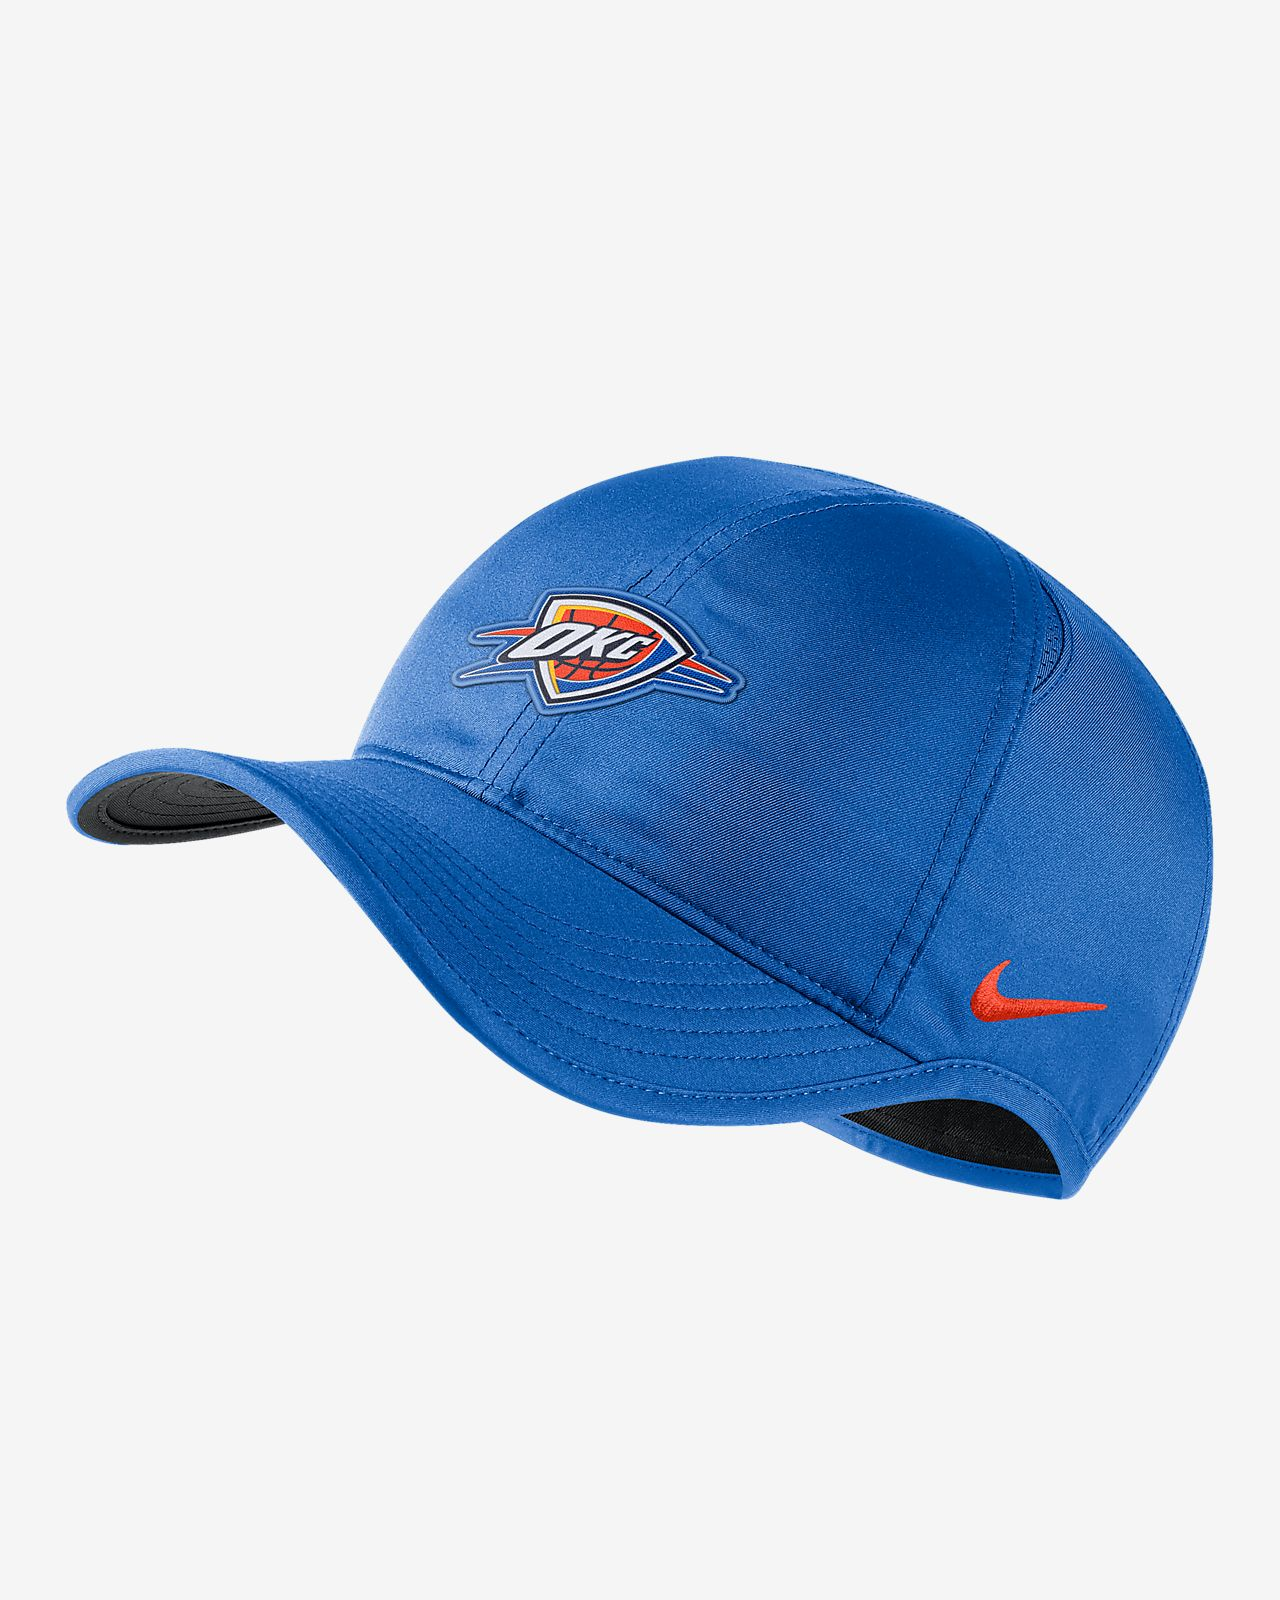 c1ca5d3b7177 Oklahoma City Thunder Nike AeroBill Featherlight NBA Hat. Nike.com